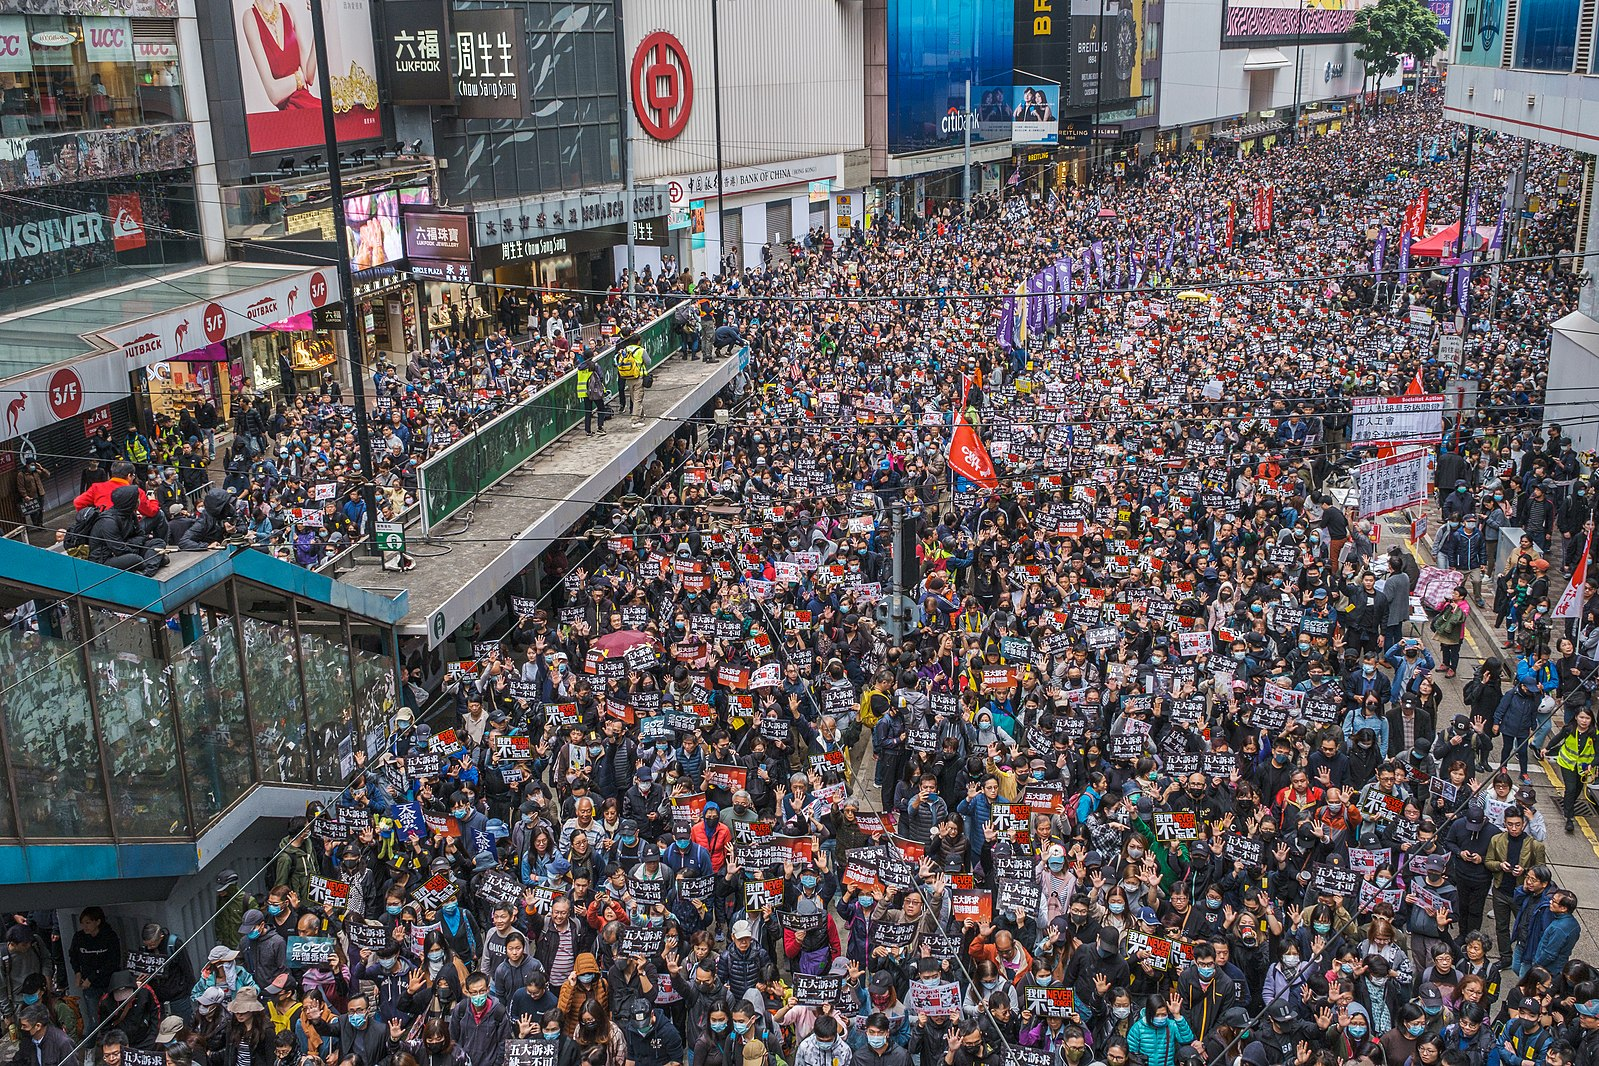 Protesters flood the streets (Image Wikipedia)